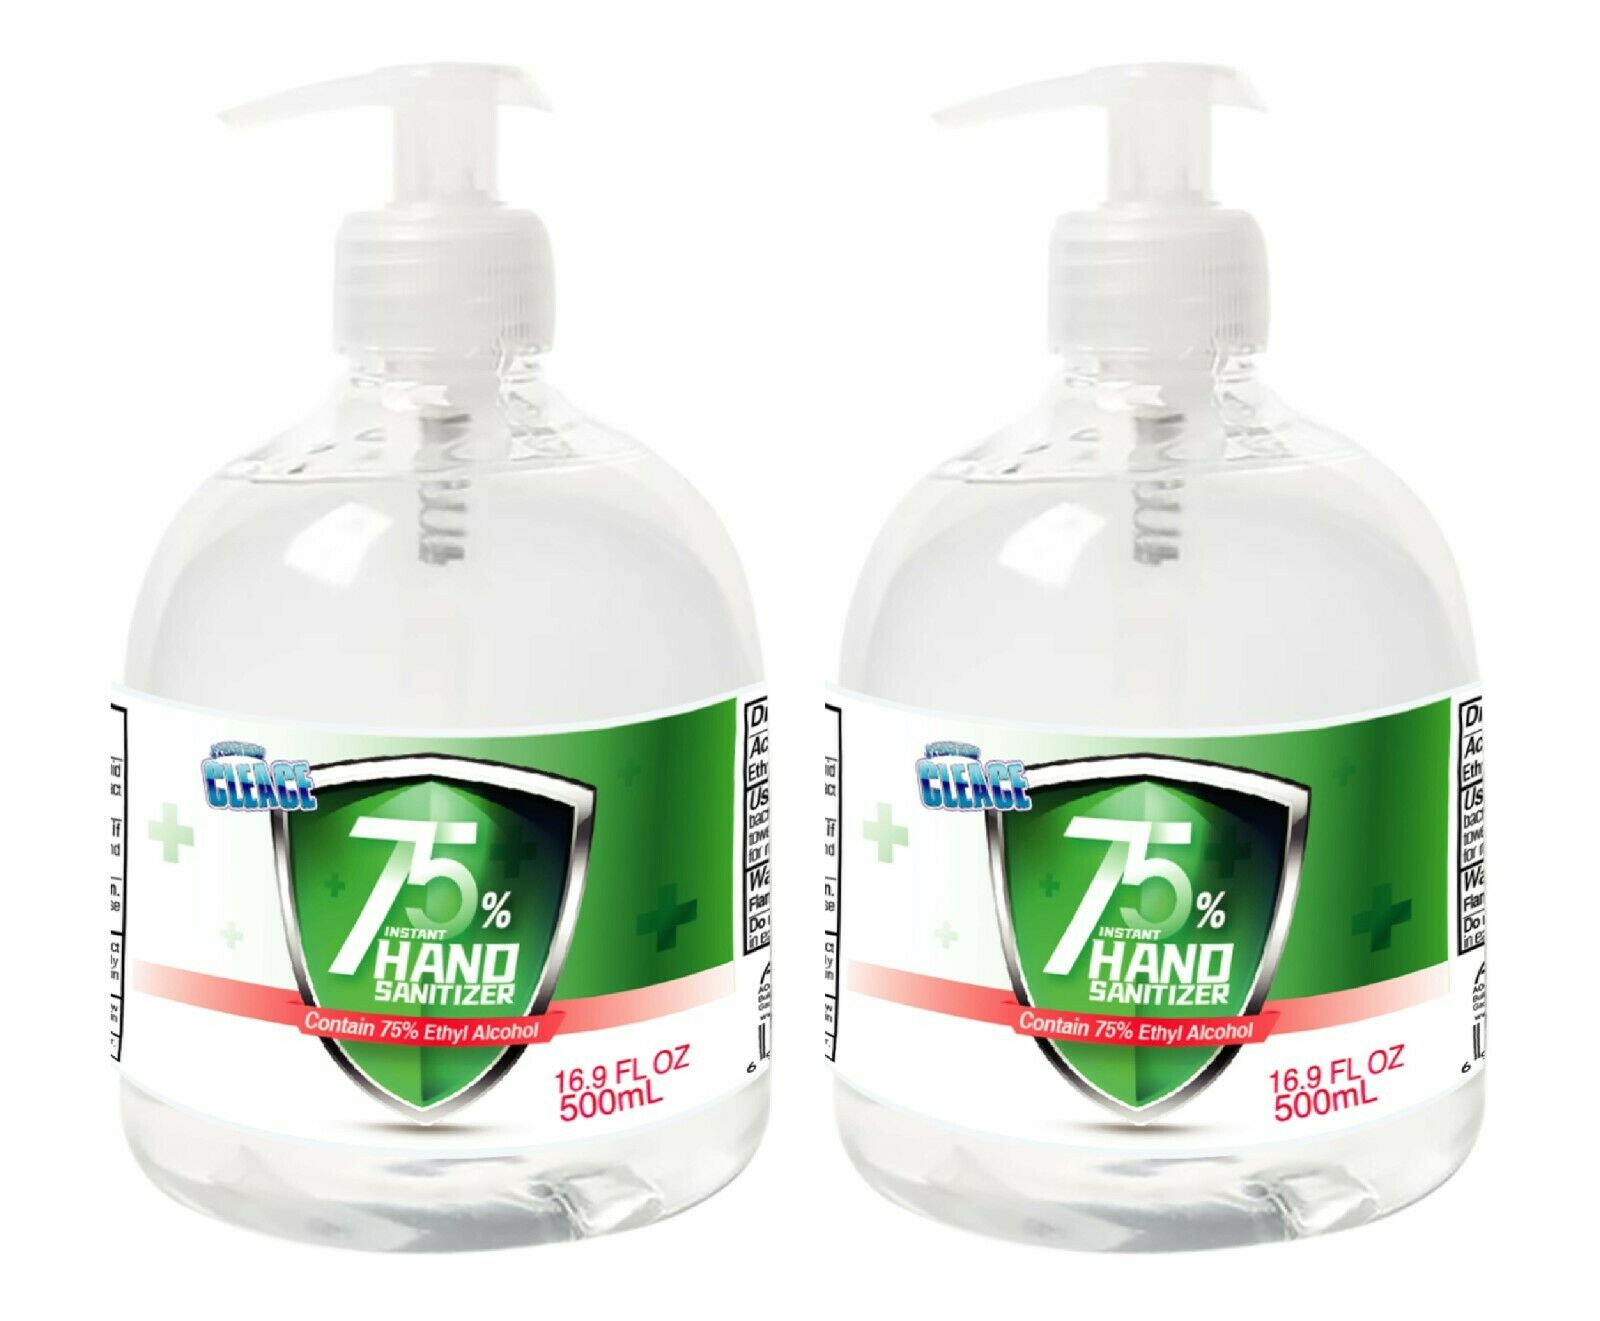 [2-PACK] Cleace Advanced 75% Alcohol Sanitizer Gel, 16.9 oz each (33.8 oz total) Hand Sanitizers